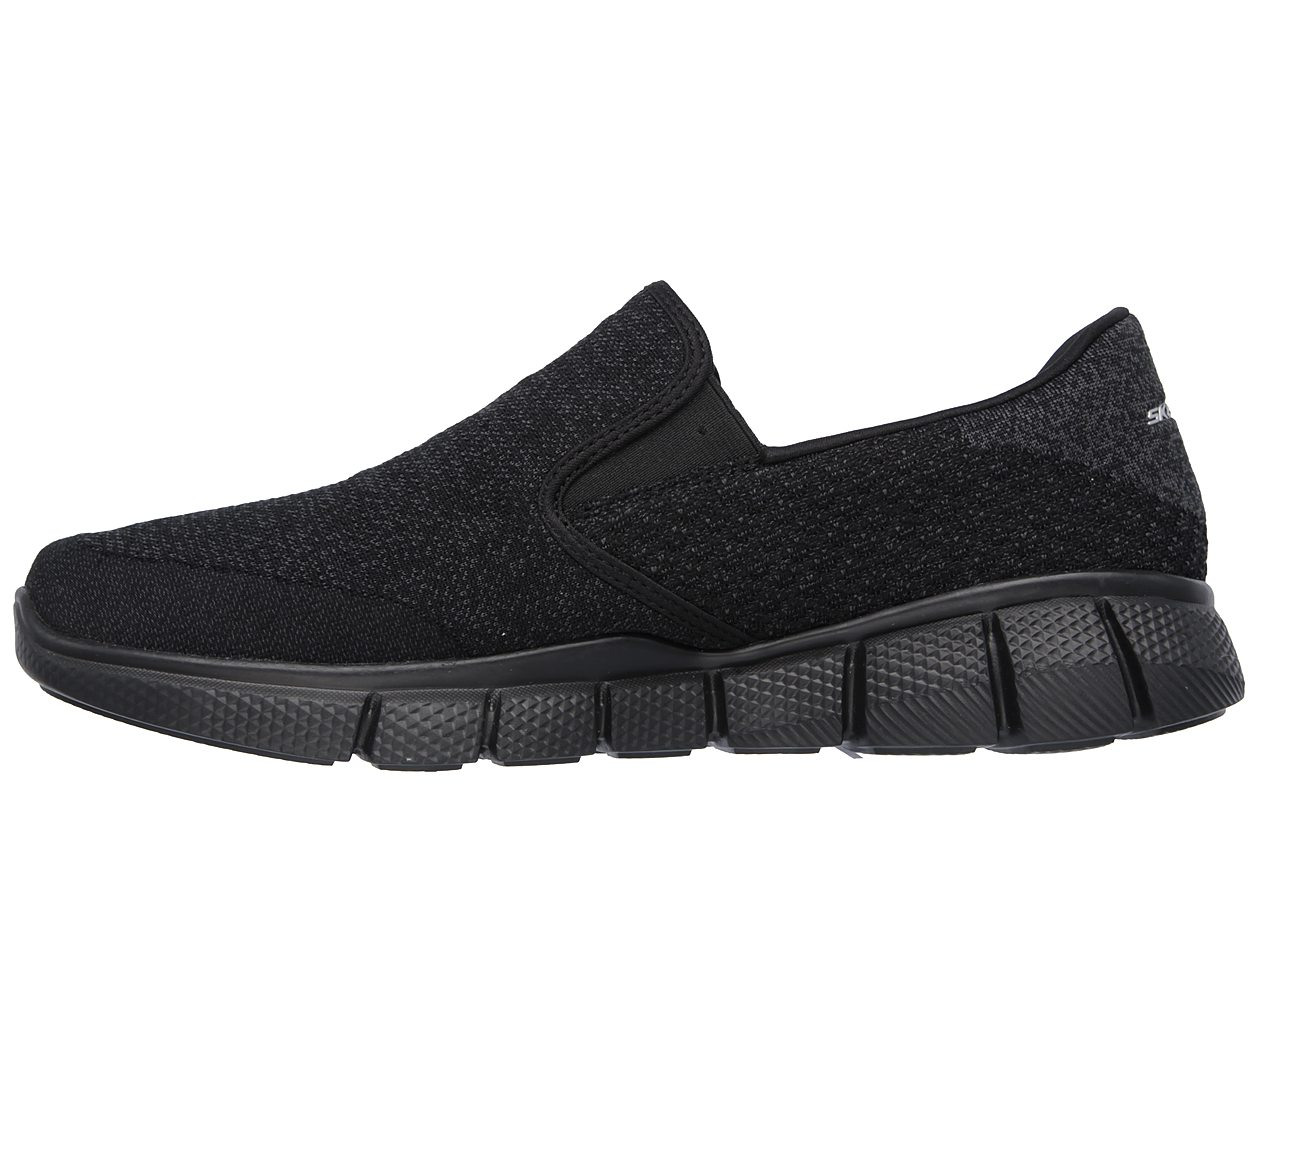 32bf13f0cd0a9 Buy SKECHERS Equalizer 2.0 Sport Shoes only $90.00